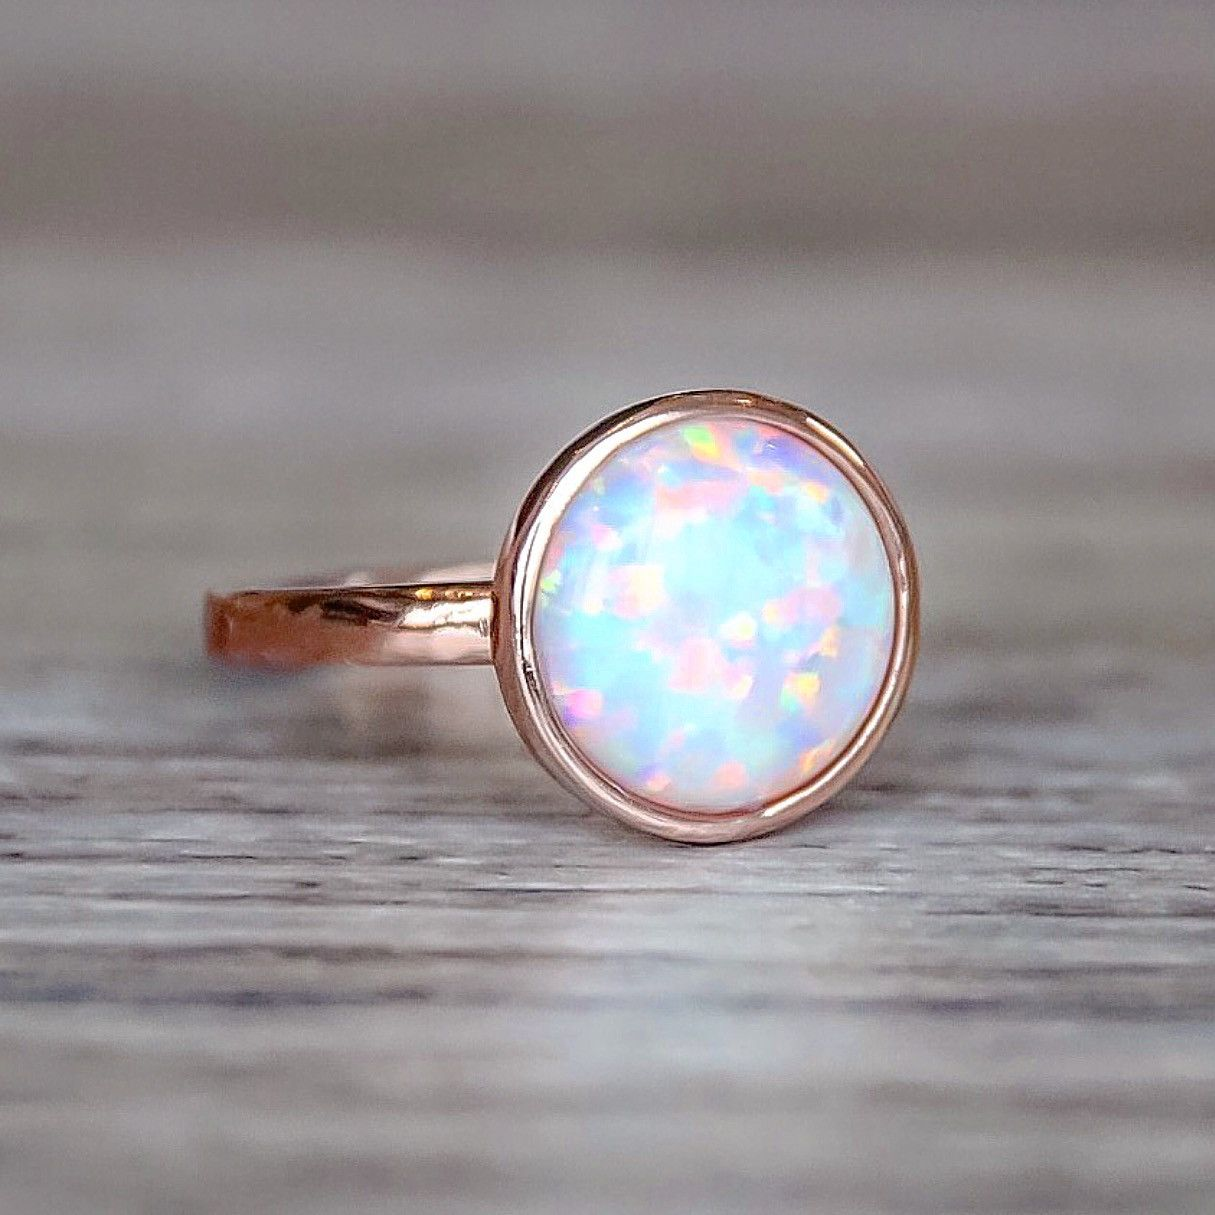 Rose Gold and Opal Ring Bohemian Gypsy Jewelry Indie and